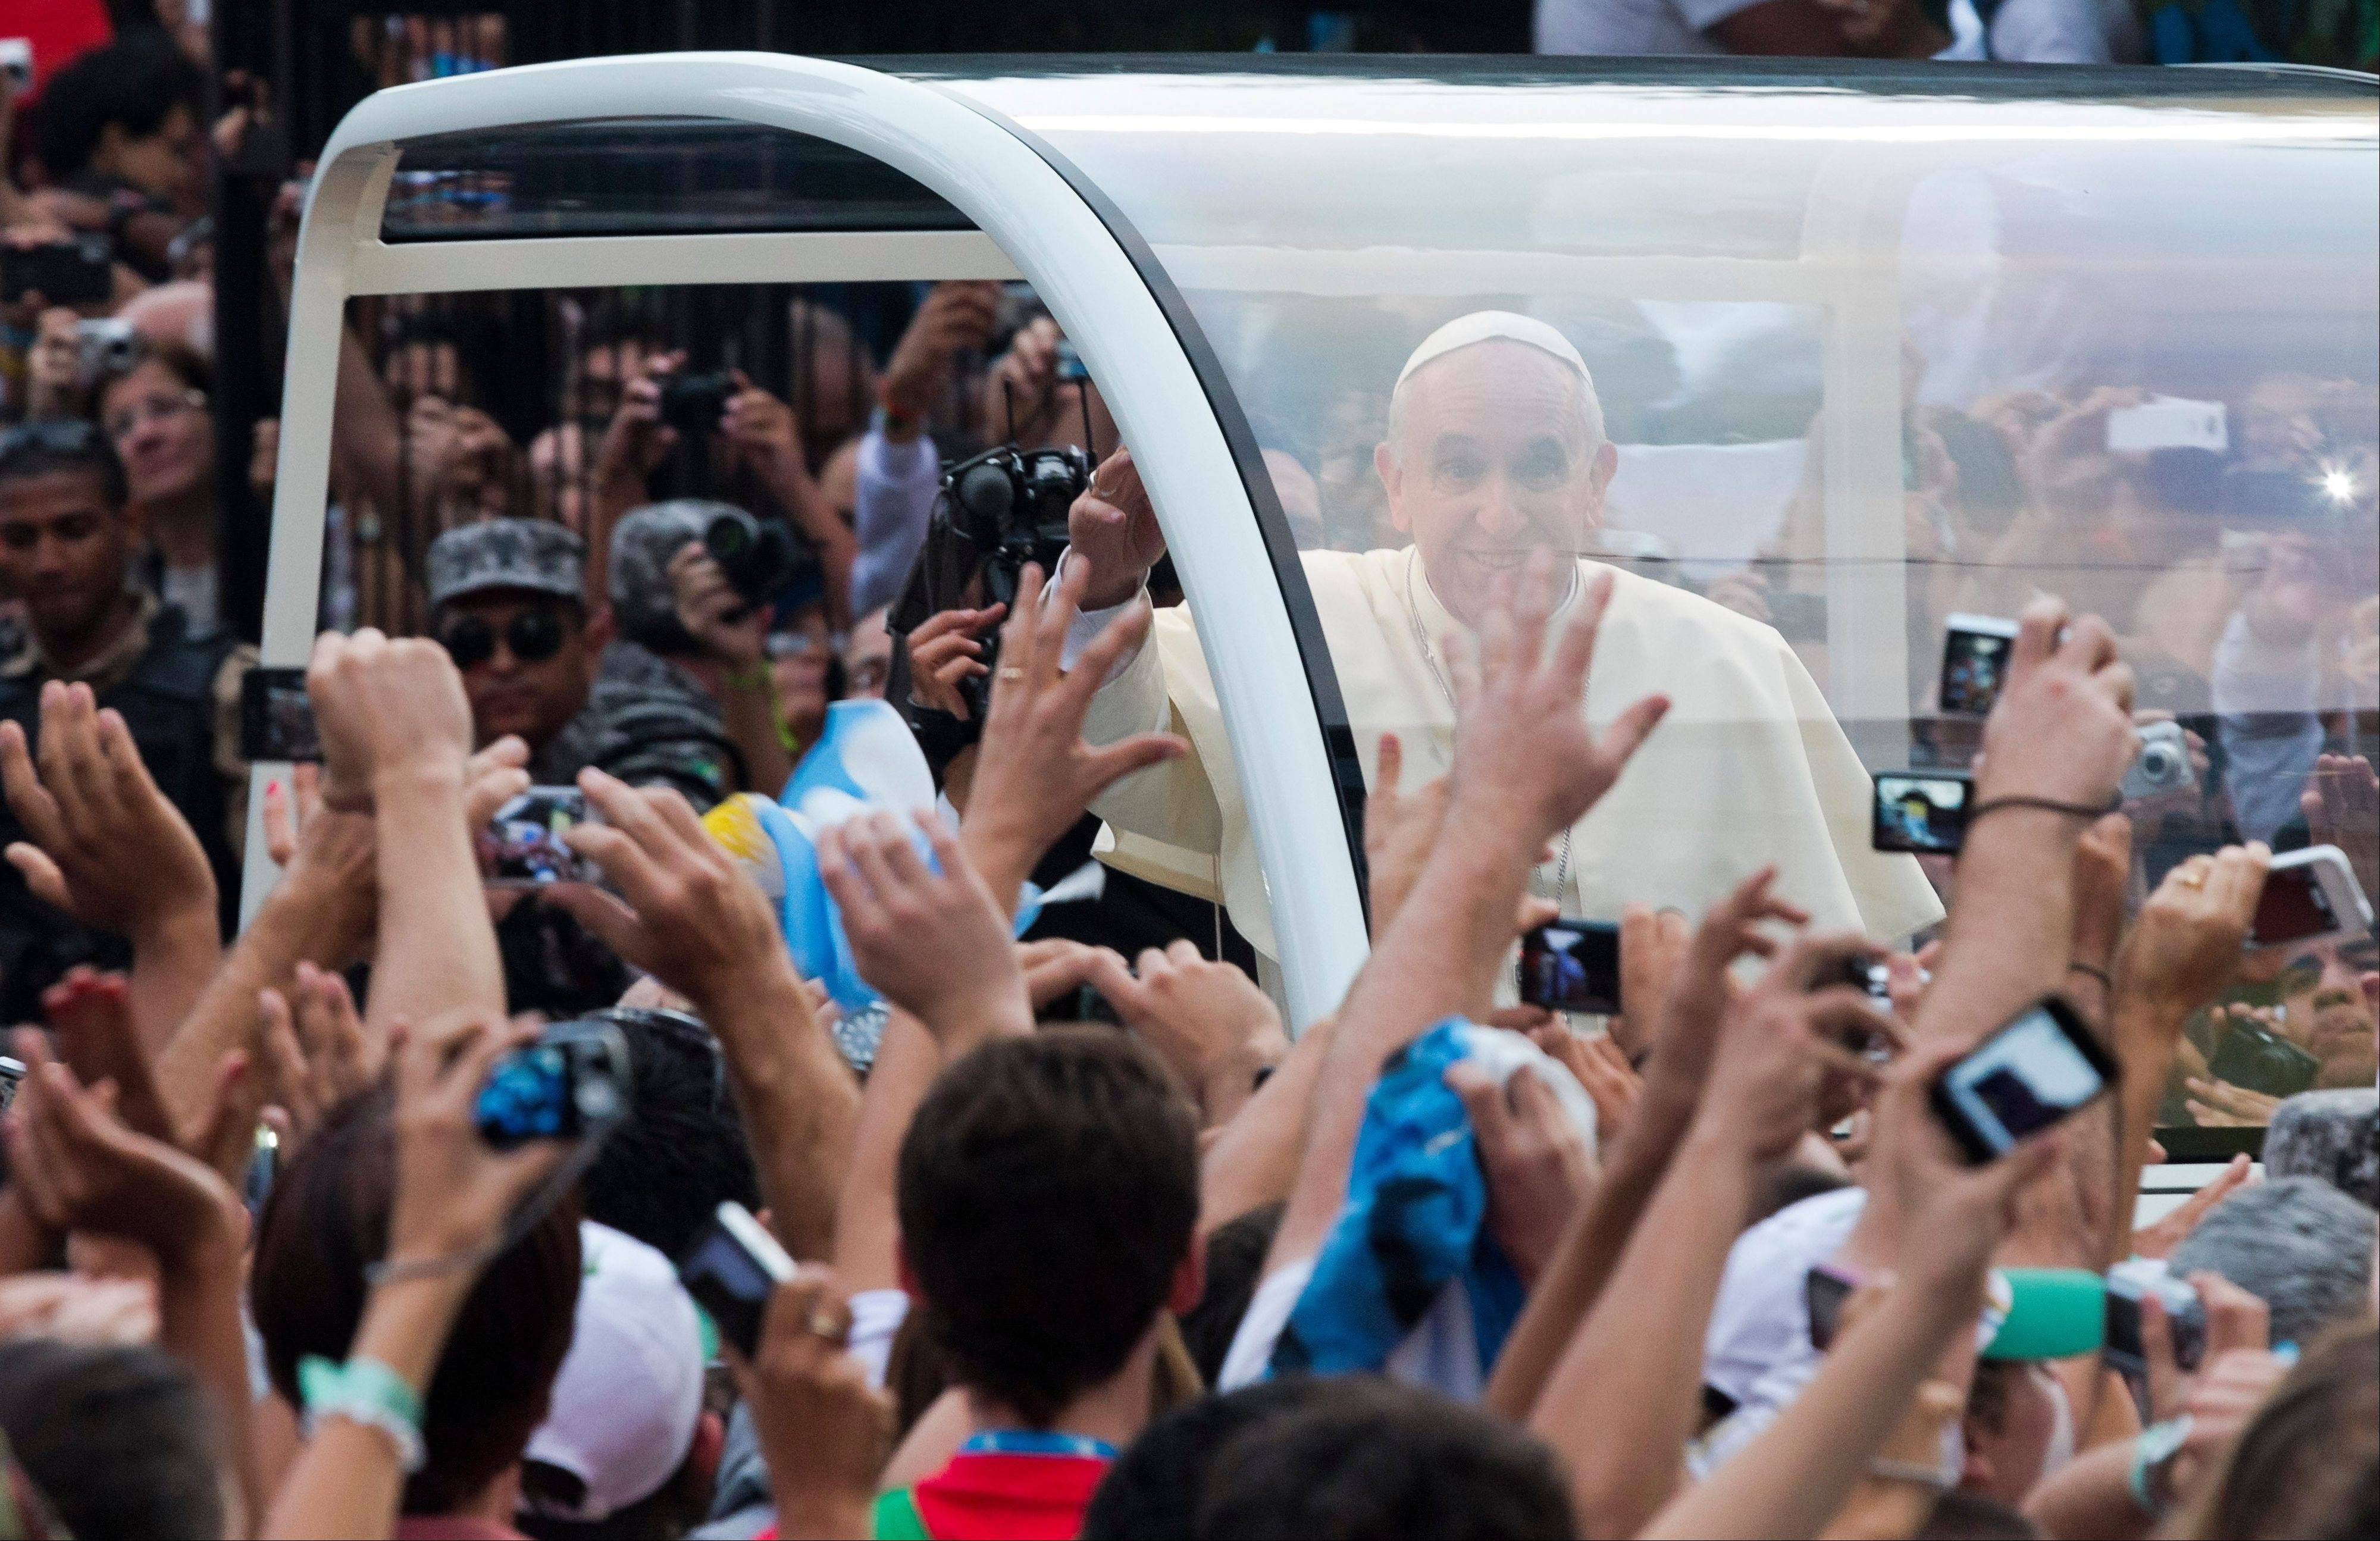 People reach out to Pope Francis as he rides in a popemobile through Rio de Janeiro, Brazil, Monday, July 22, 2013. Pope Francis returned to his home continent for the first time as pontiff, embarking on a visit meant to fan the fervor of the faithful around the globe.